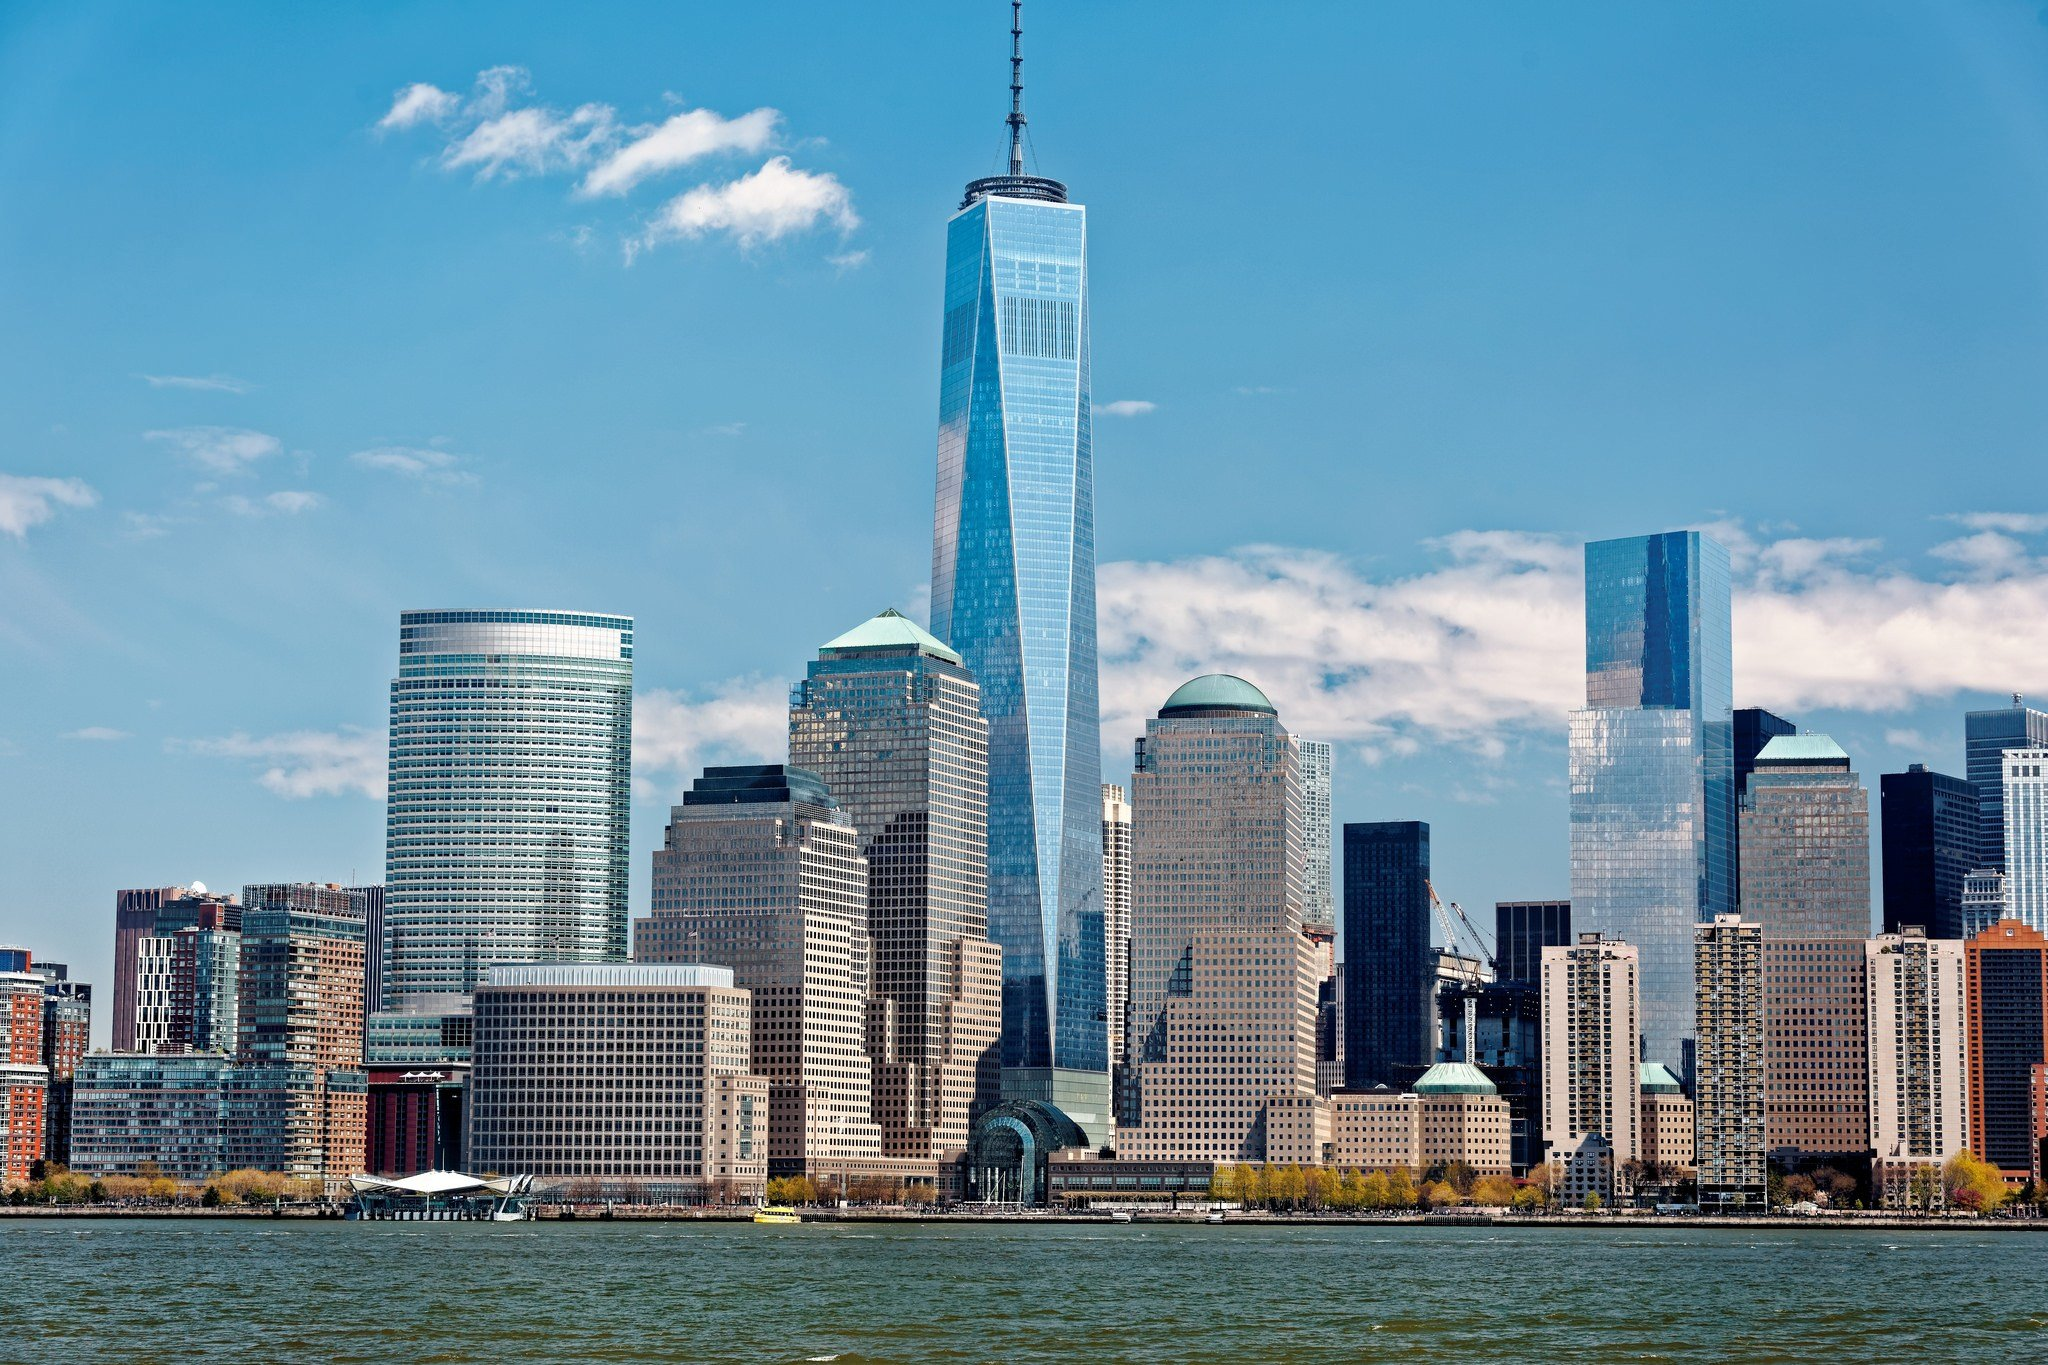 Condé Nast Will Sublease Nearly One Third Of Its One World Trade